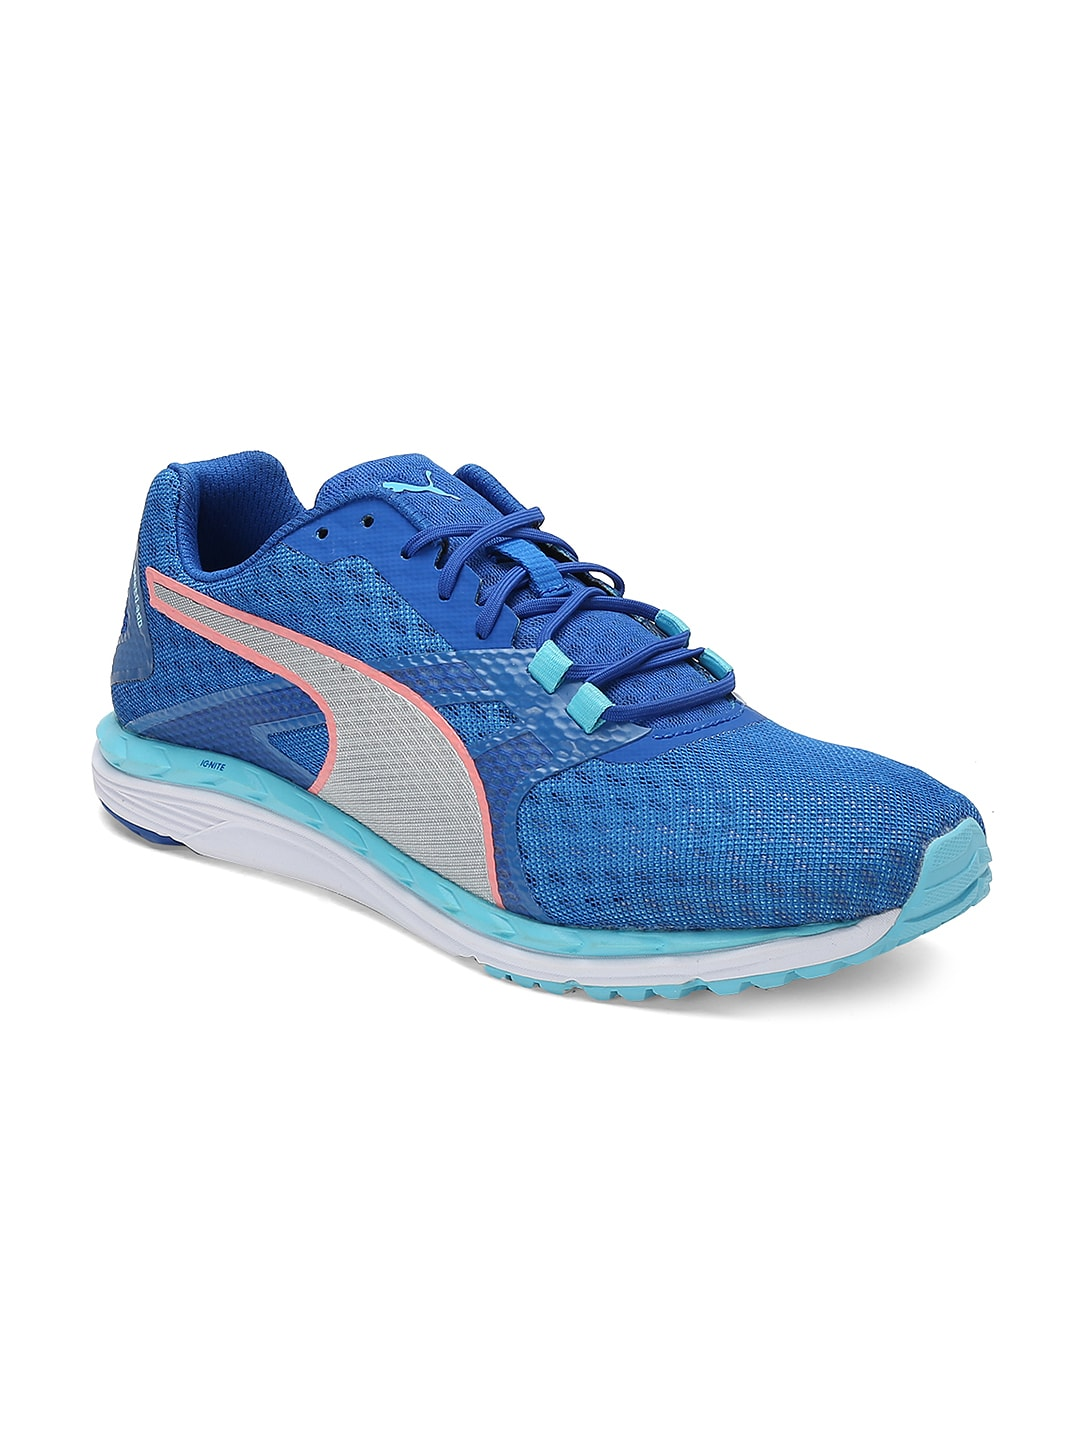 newest c25fa 5c90e Puma Shoes - Buy Puma Shoes for Men   Women Online in India